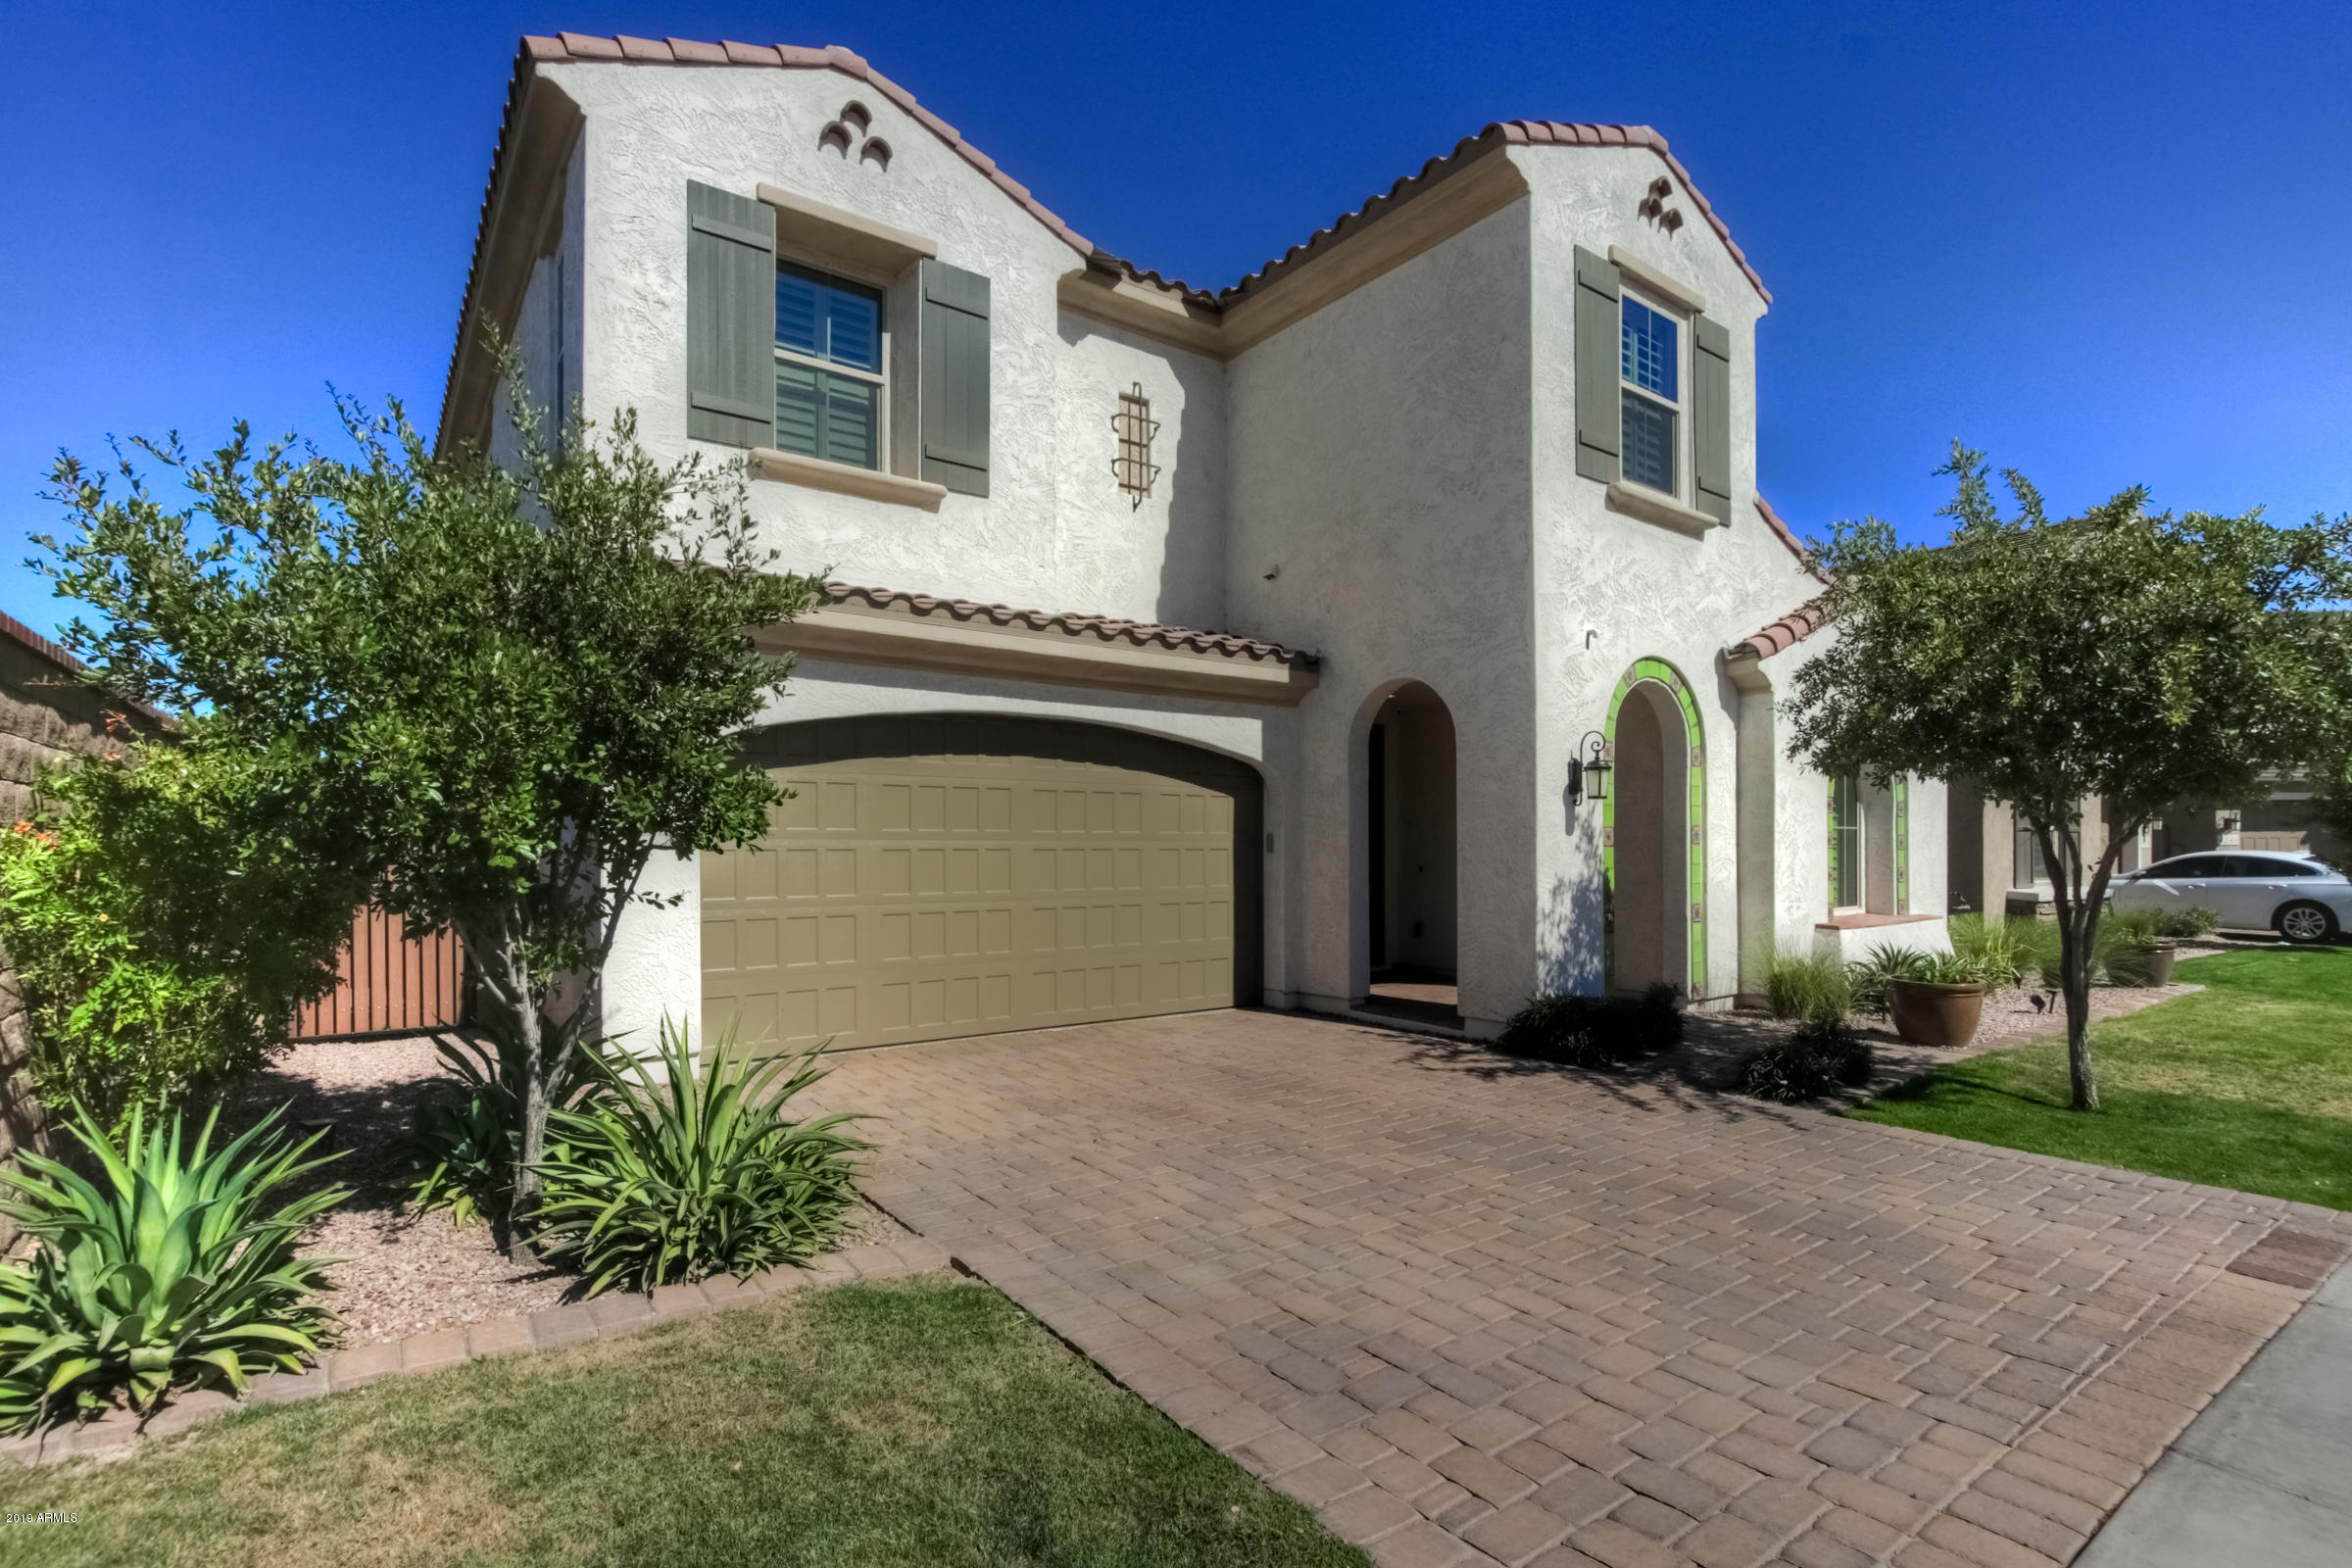 MLS 5950734 4221 S BARBERRY Drive, Chandler, AZ 85248 Community Pool